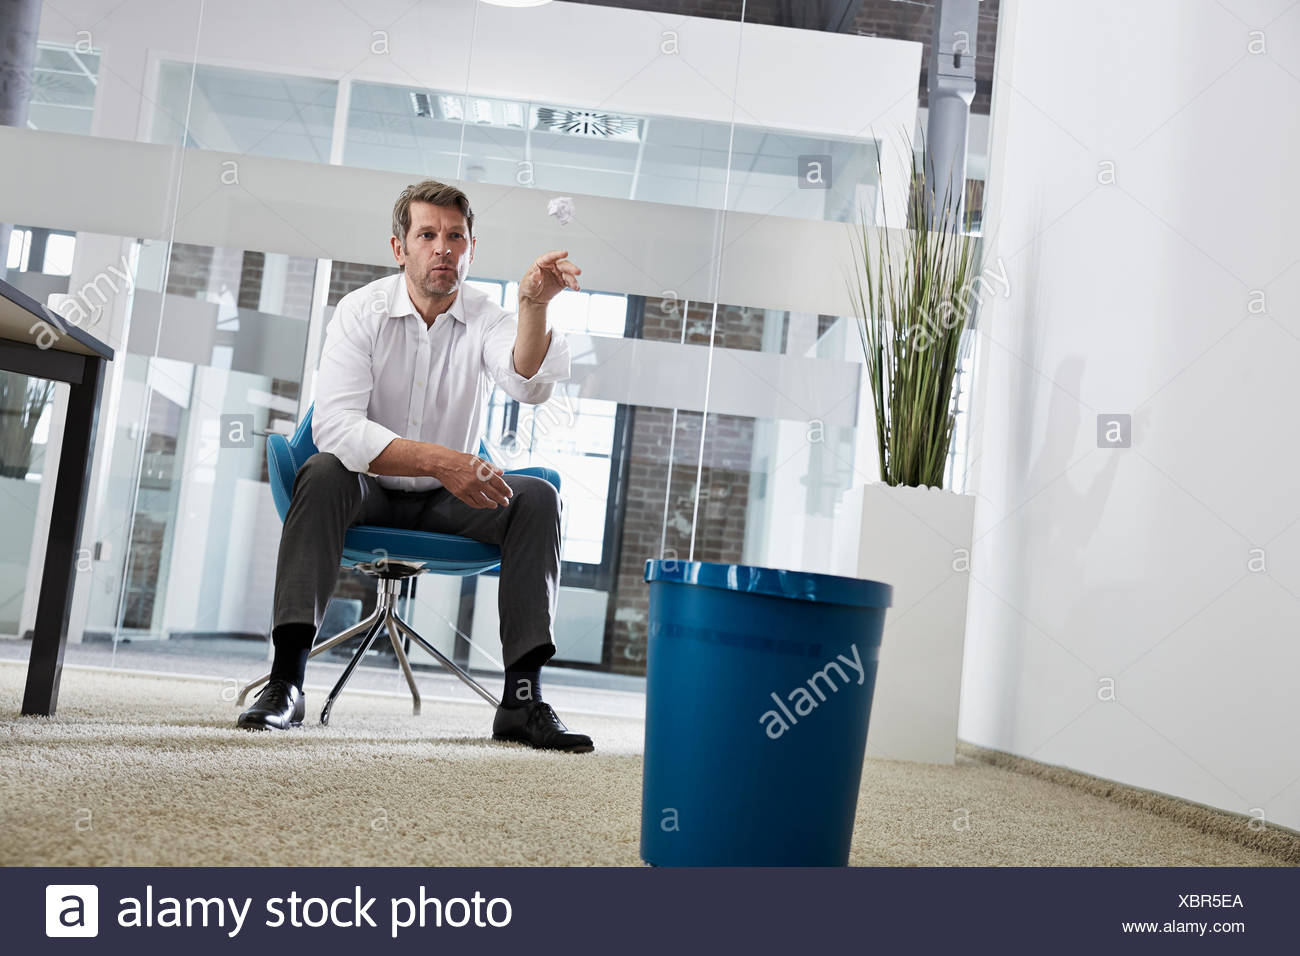 Businessman in office throwing crumpled paper in wastepaper basket Stock Photo